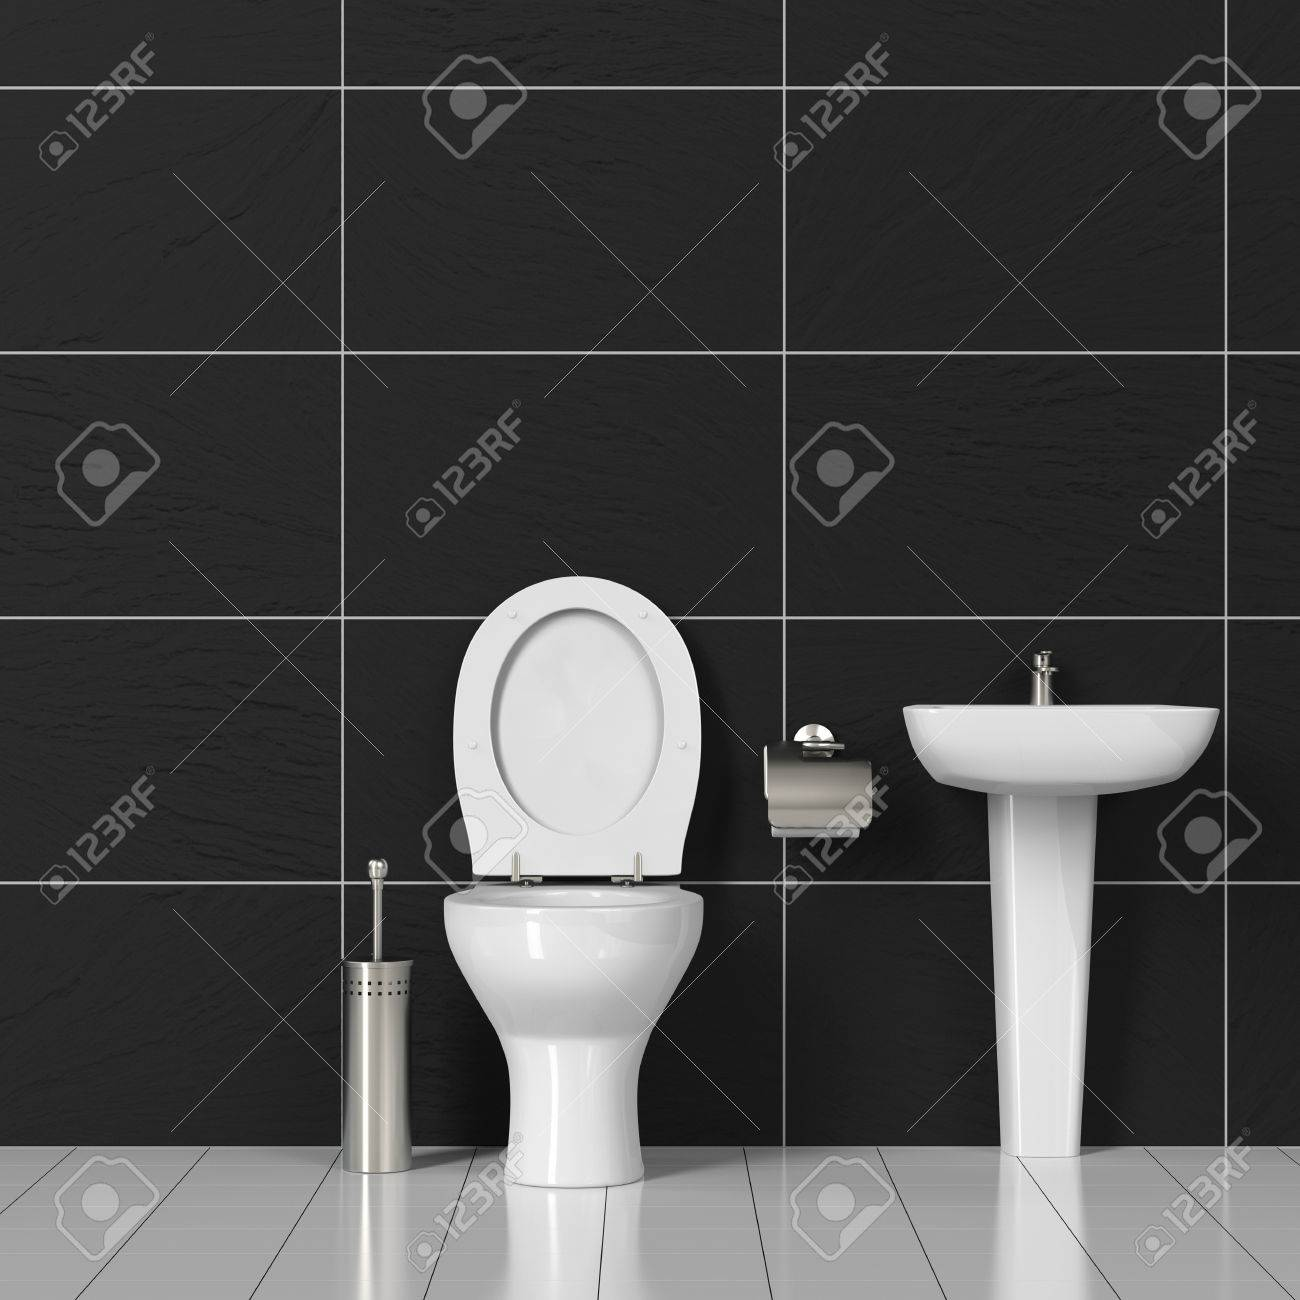 Toilet And Sink In A WC Bathroom With Black Tiles (3D Rendering ...